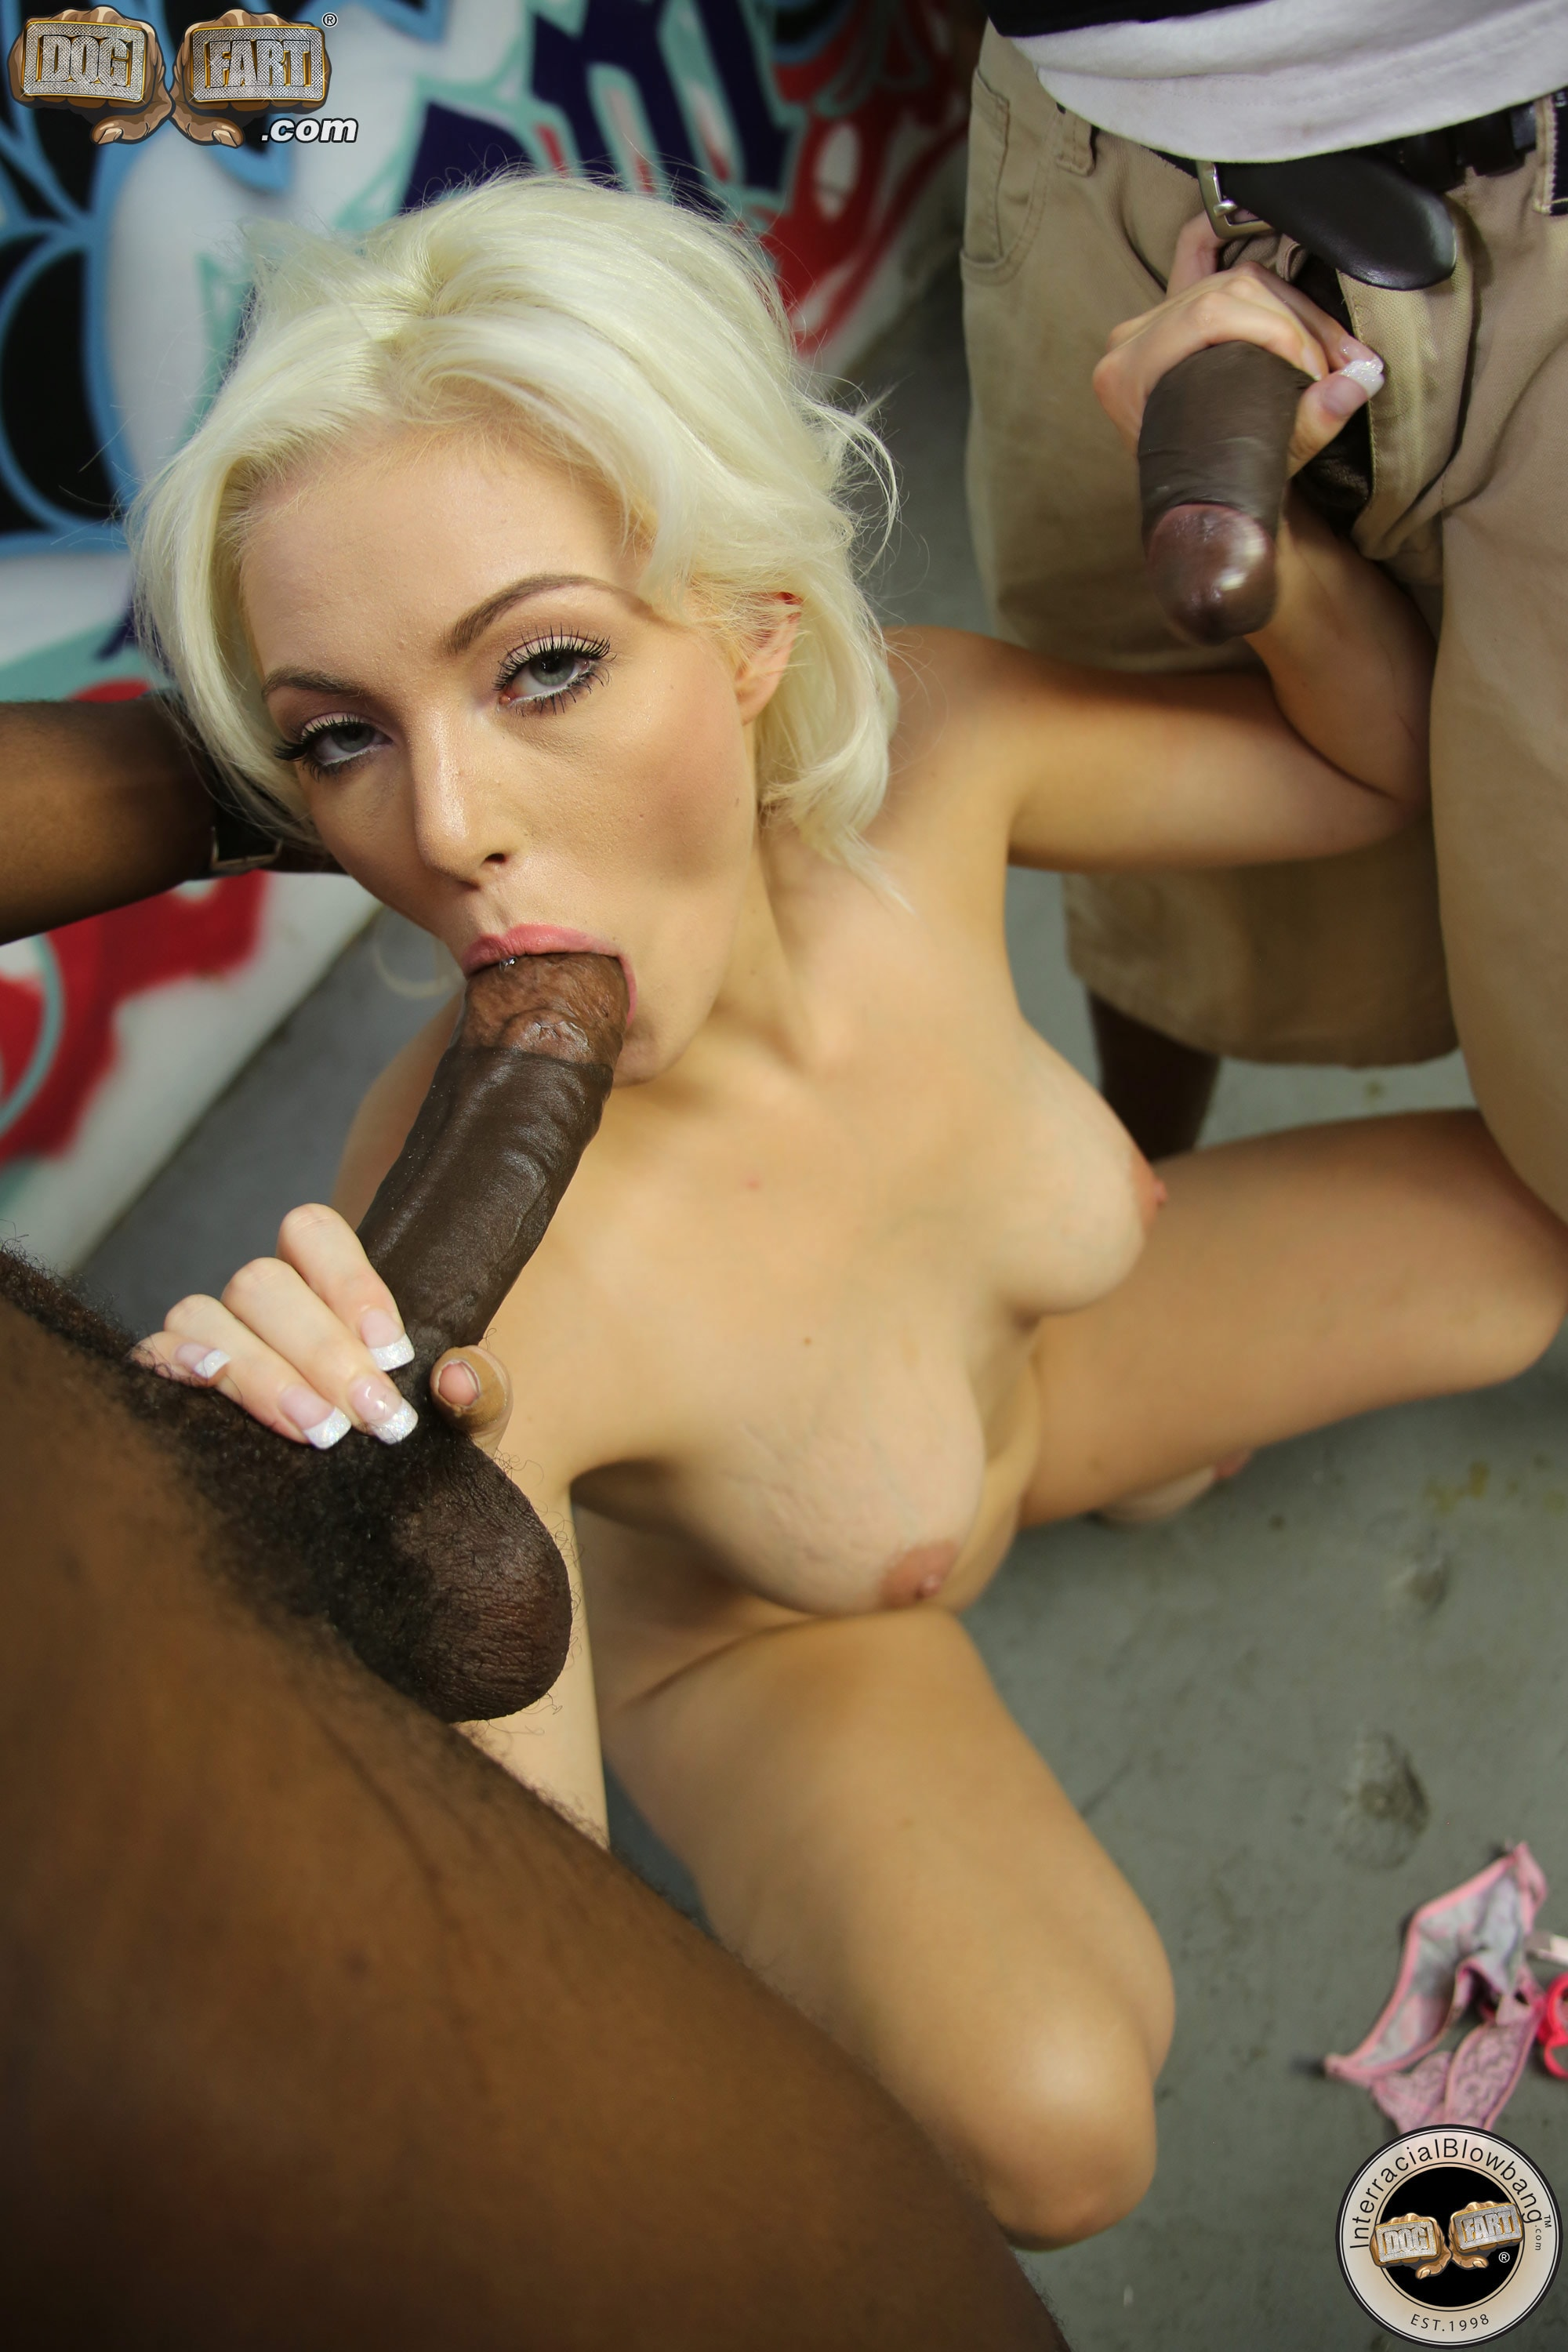 interracial Jenna ivory